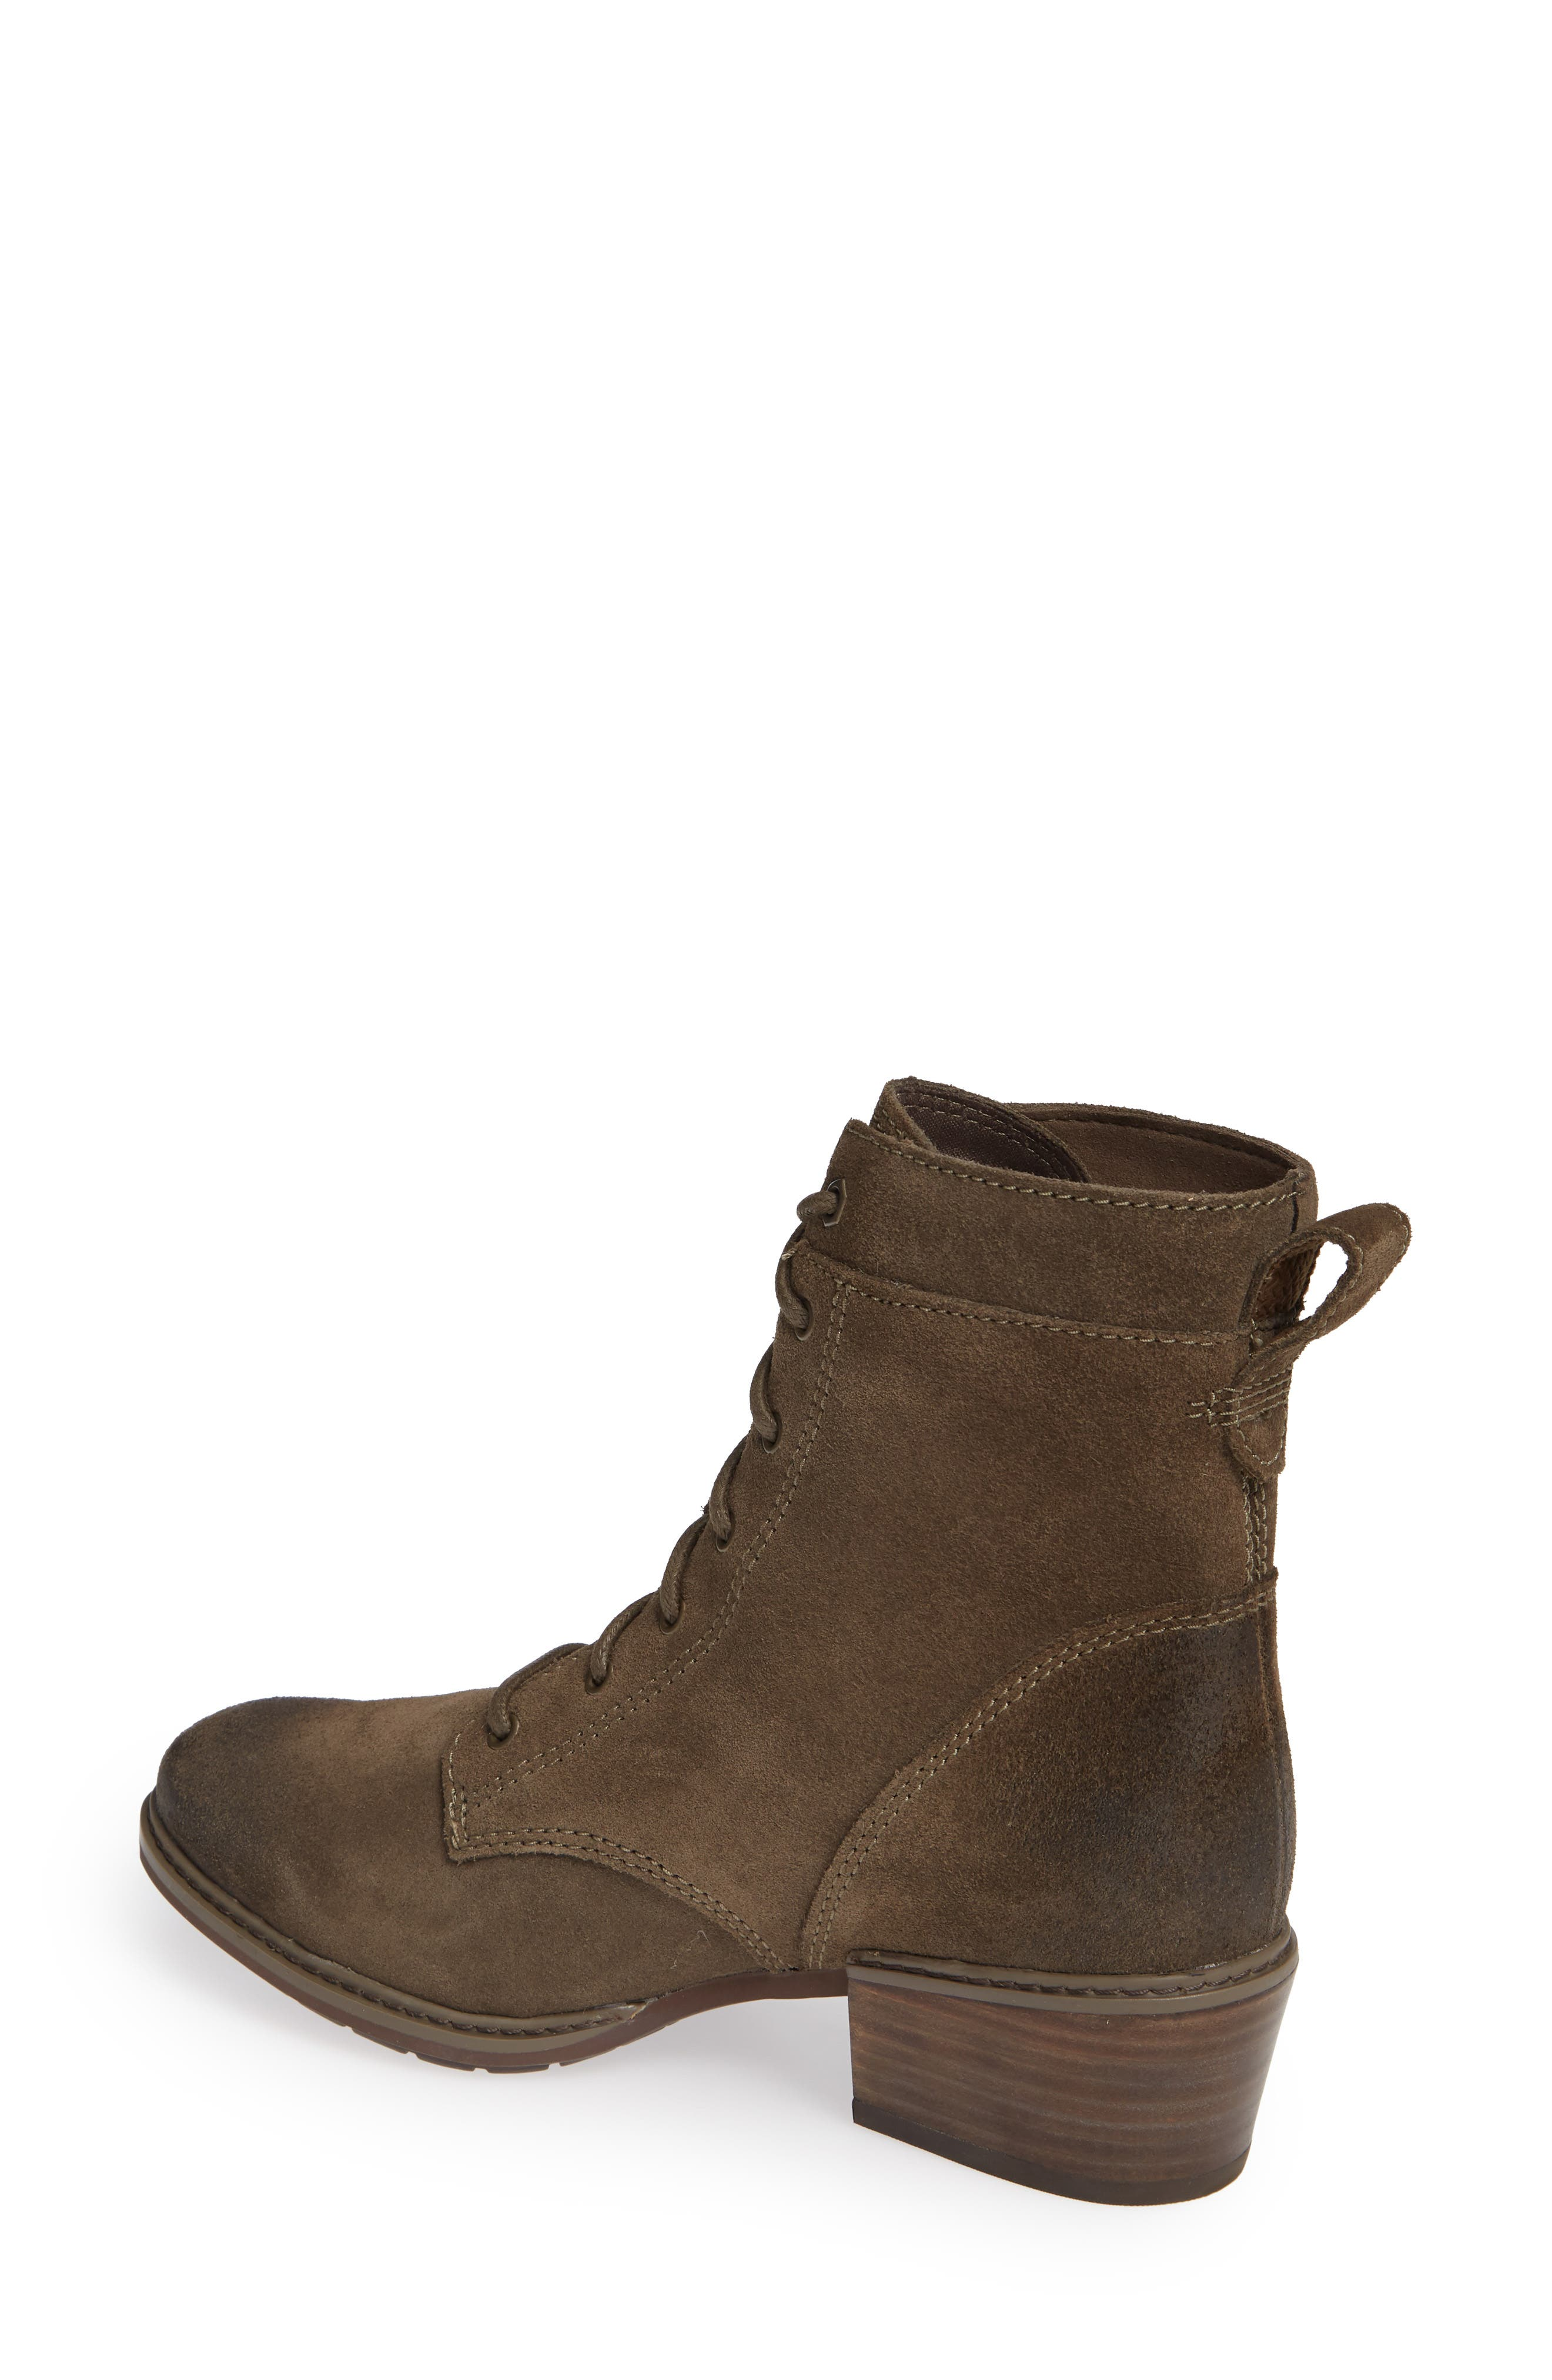 TIMBERLAND,                             Sutherlin Bay Water Resistant Lace-Up Bootie,                             Alternate thumbnail 2, color,                             CANTEEN SUEDE